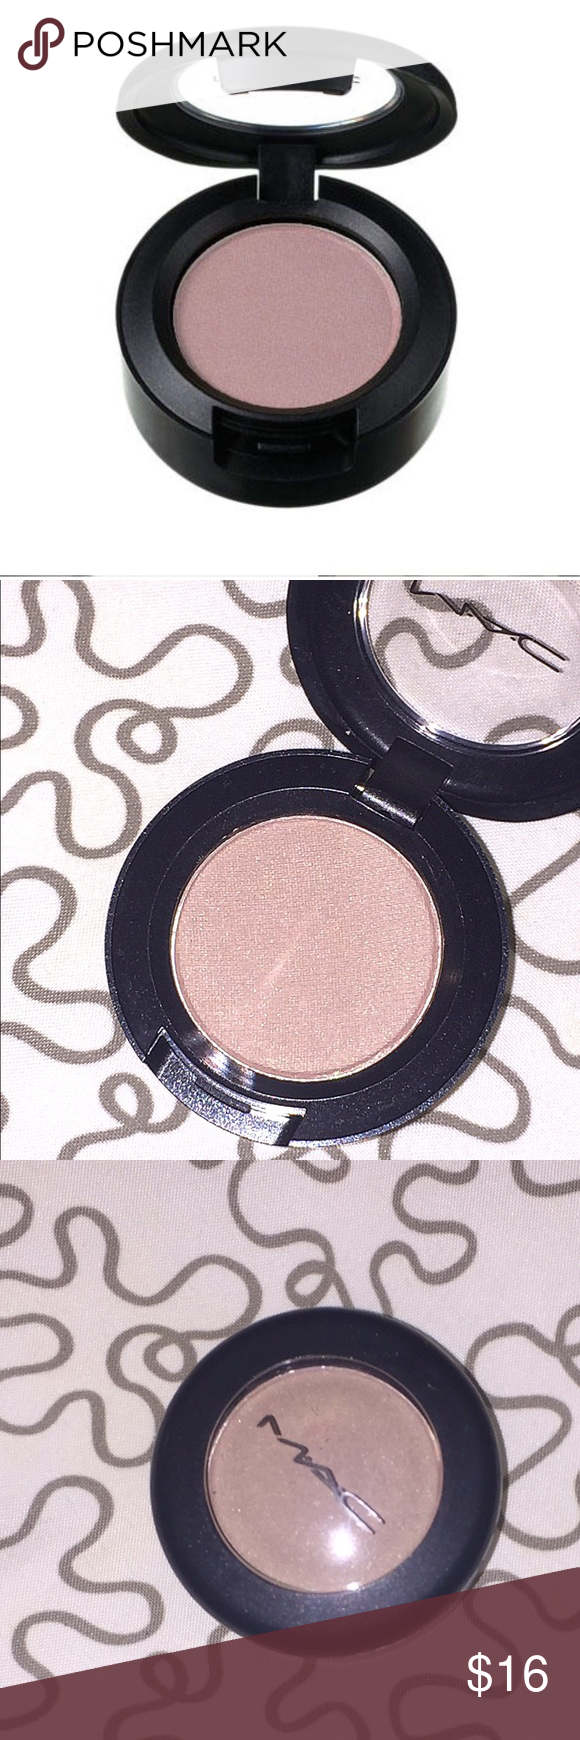 Full-Size MAC eyeshadow in LYRIC New and never used or swatched! Just opened for photo purposes. Neutral color that is great for any skin tone! 💋Bundle and Save! 💋 MAC Cosmetics Makeup Eyeshadow